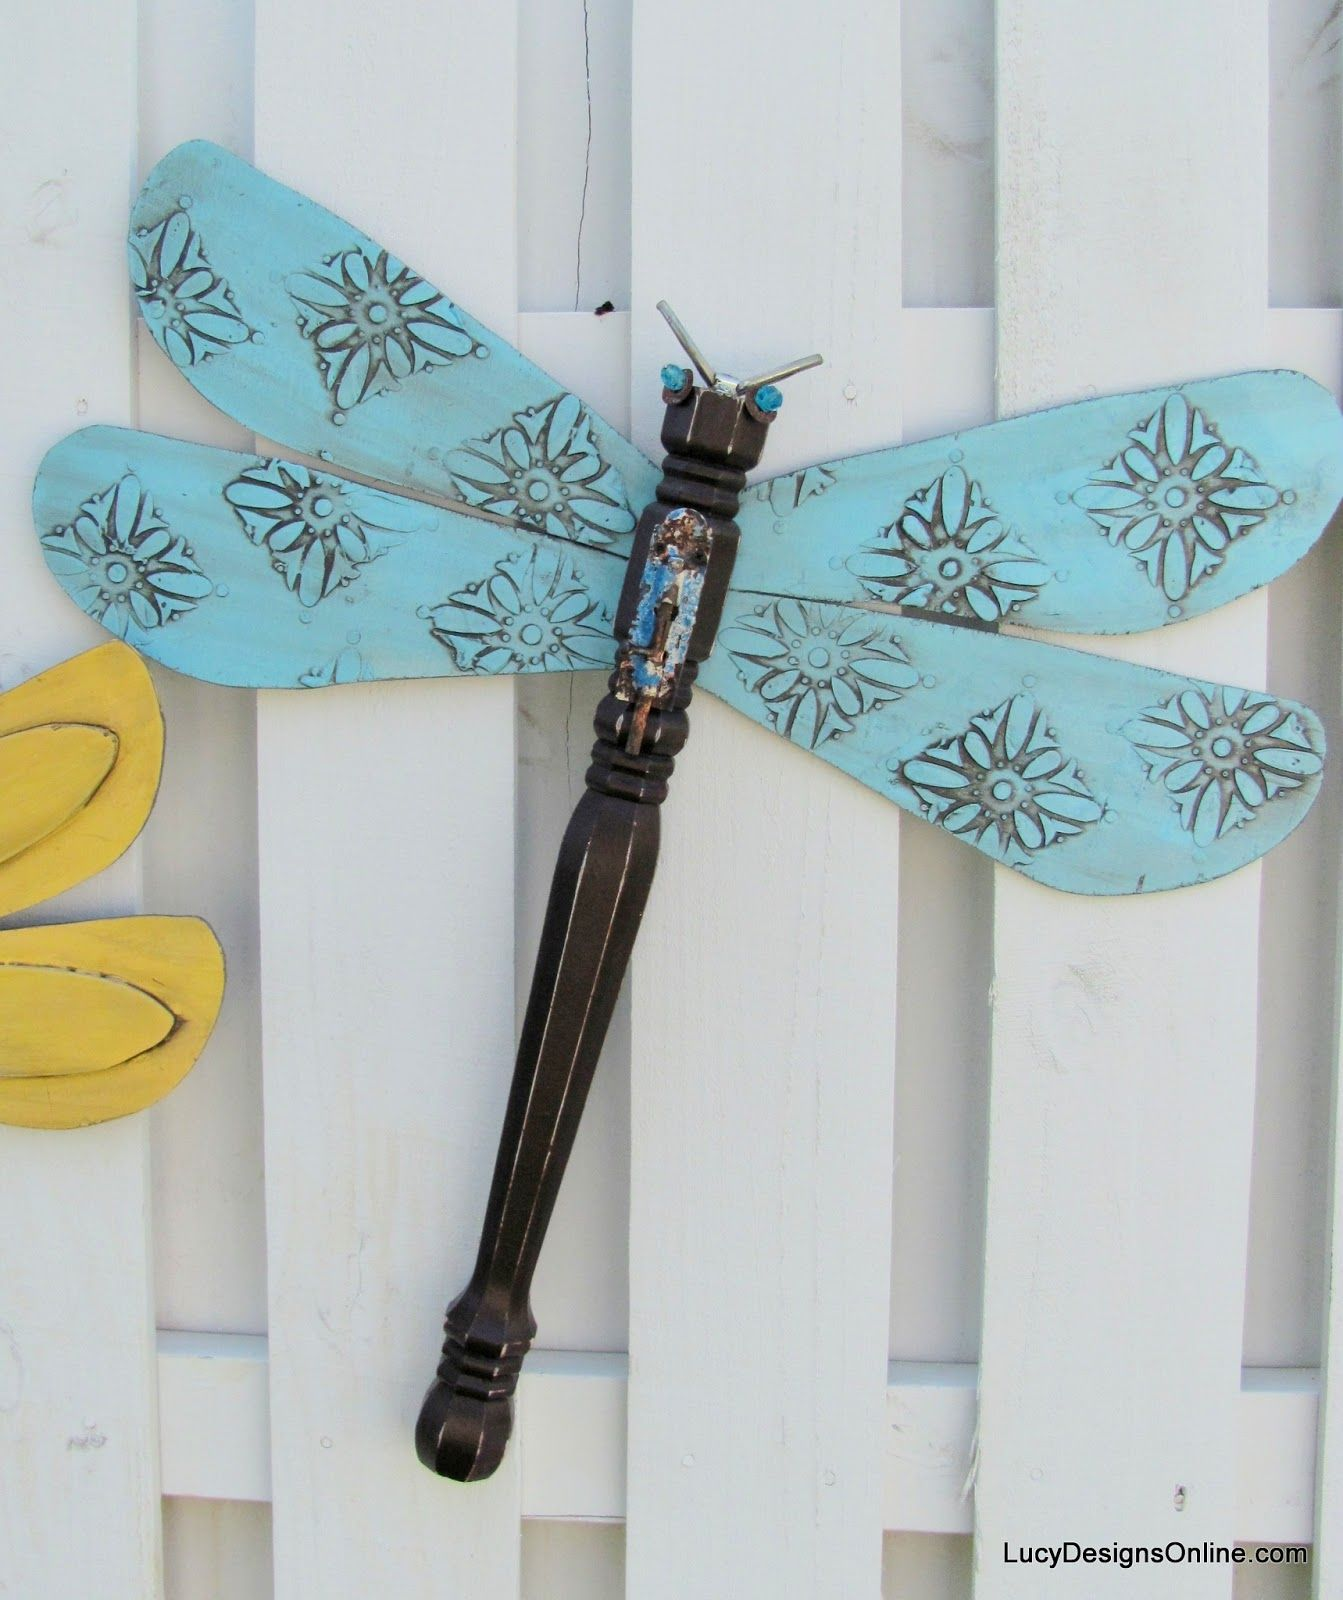 Blue Textured Wing Table Leg Dragonfly Made With Fan